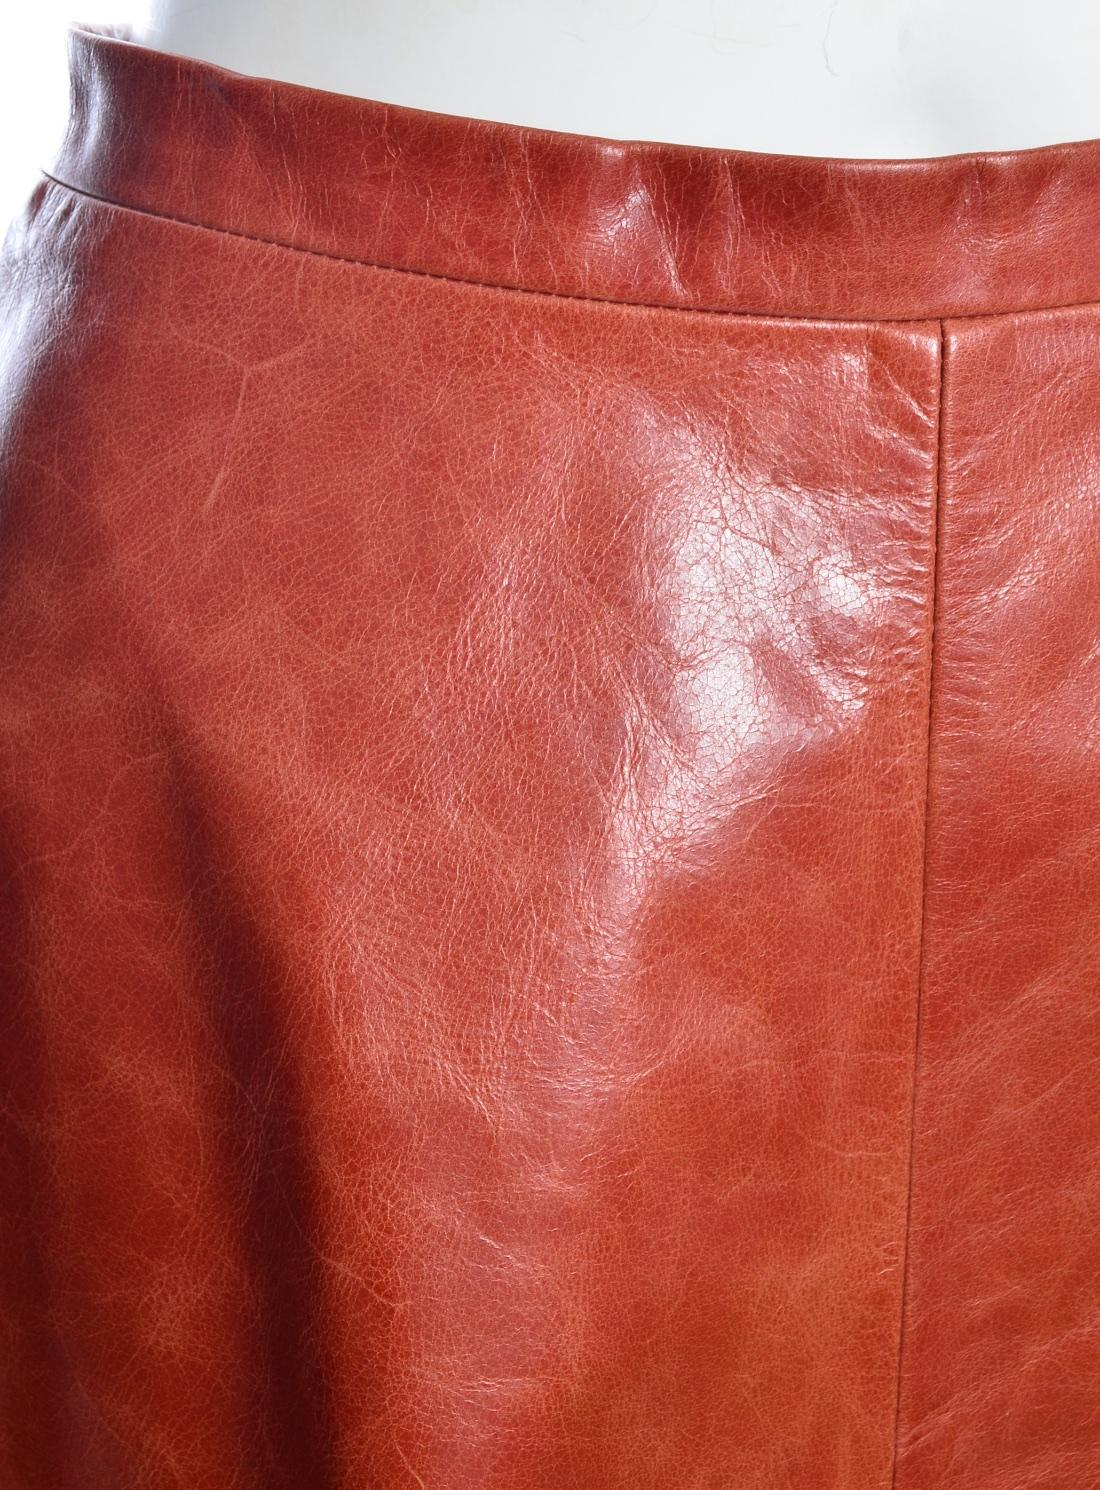 ef367fcba Peridot London Burnt Orange Long A-line Leather Skirt - Last One in Orange  - Lyst